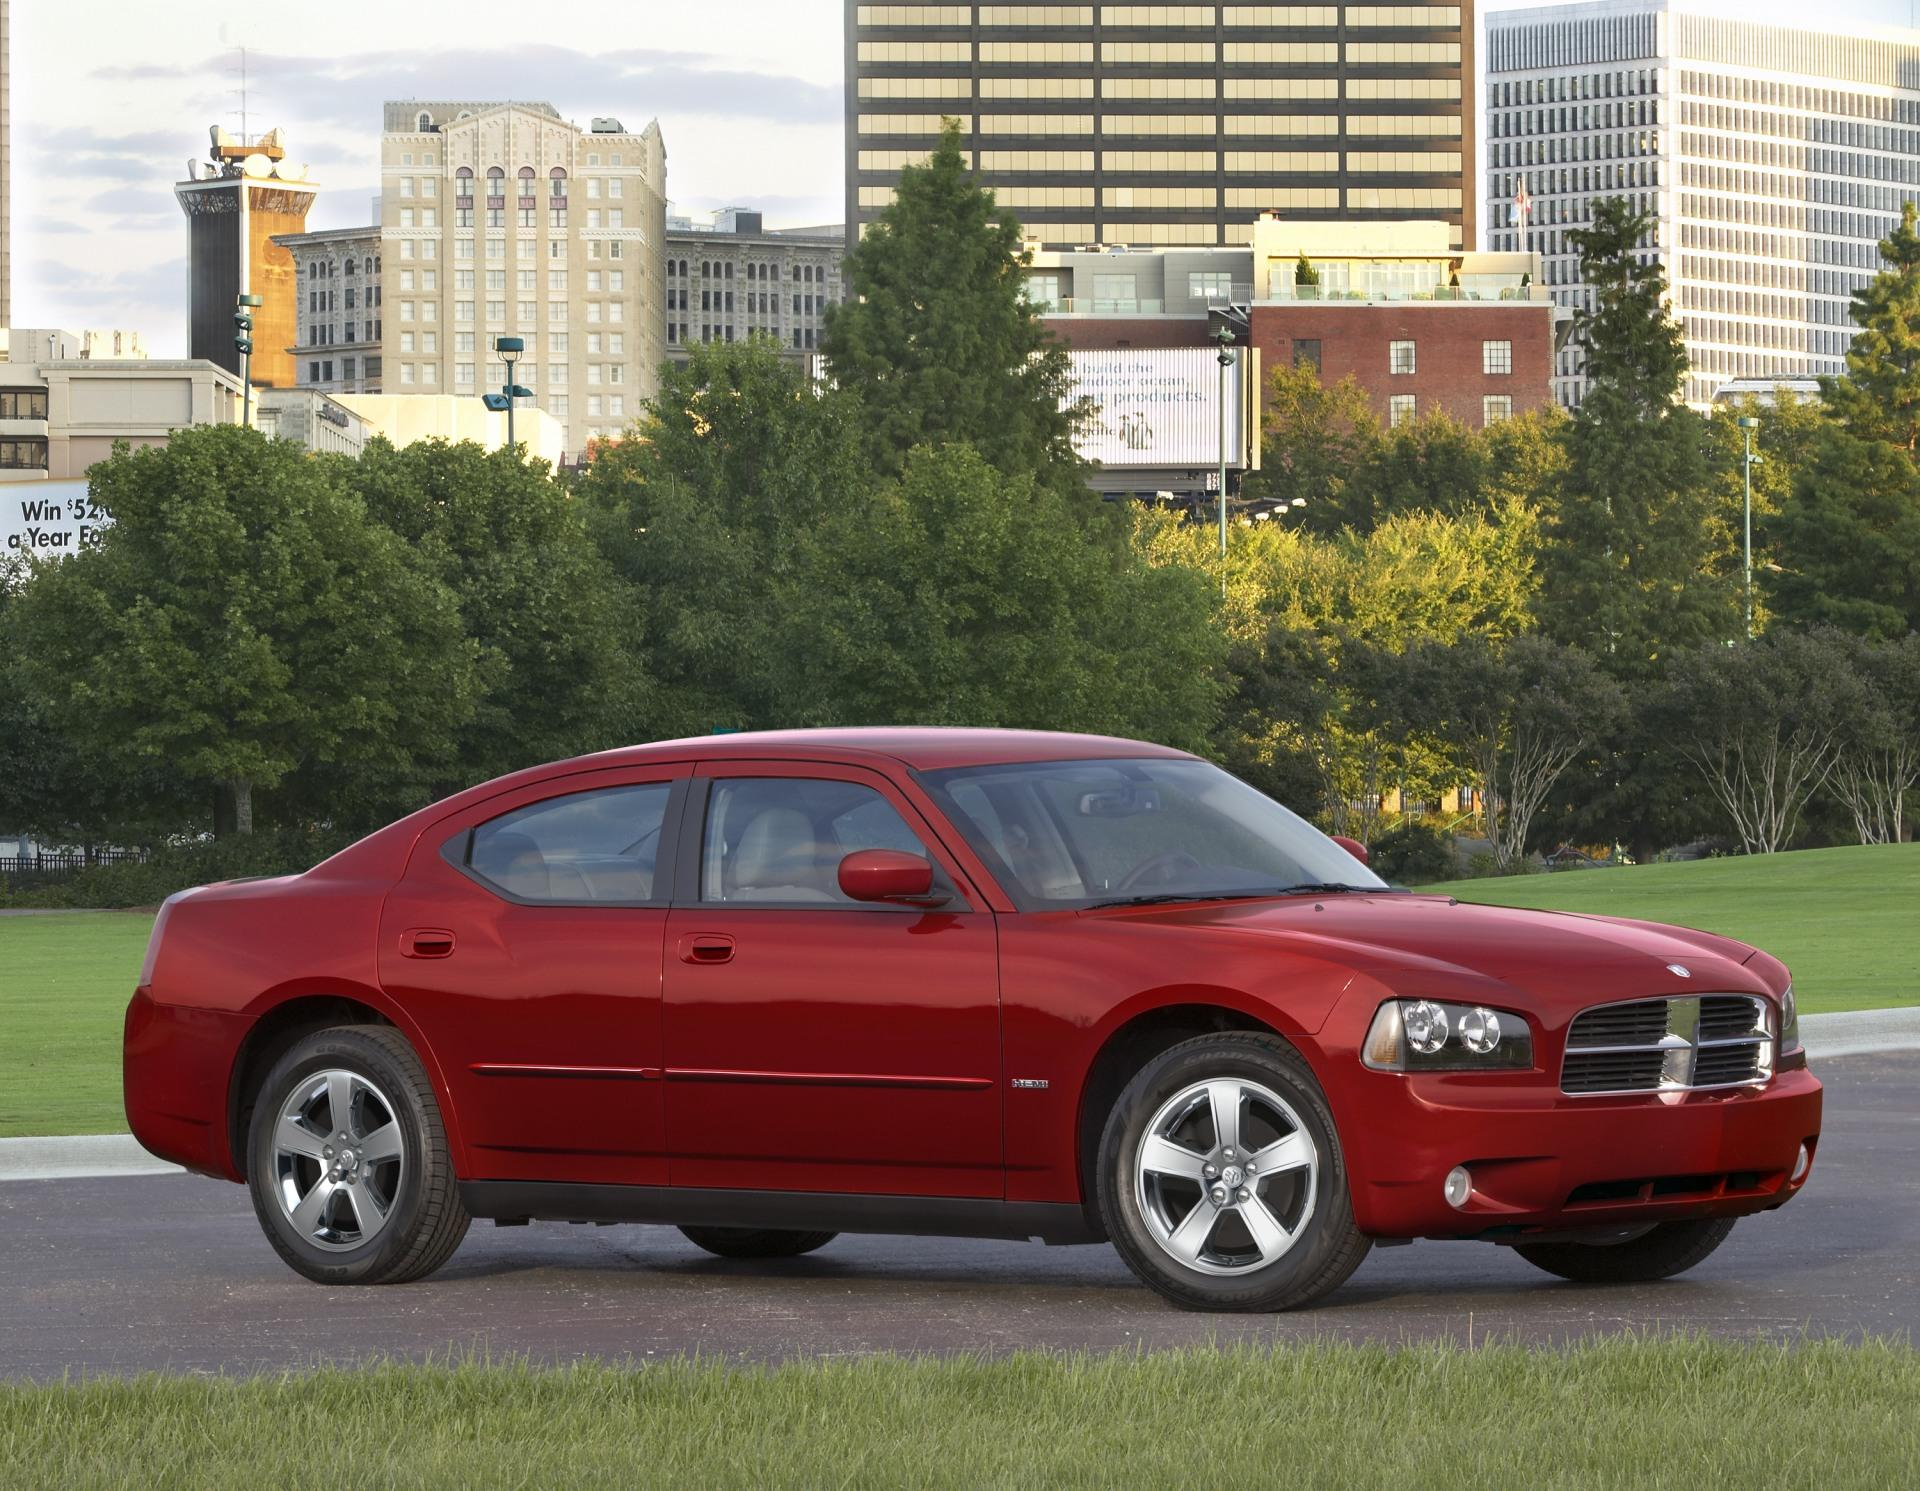 2010 dodge charger. Black Bedroom Furniture Sets. Home Design Ideas